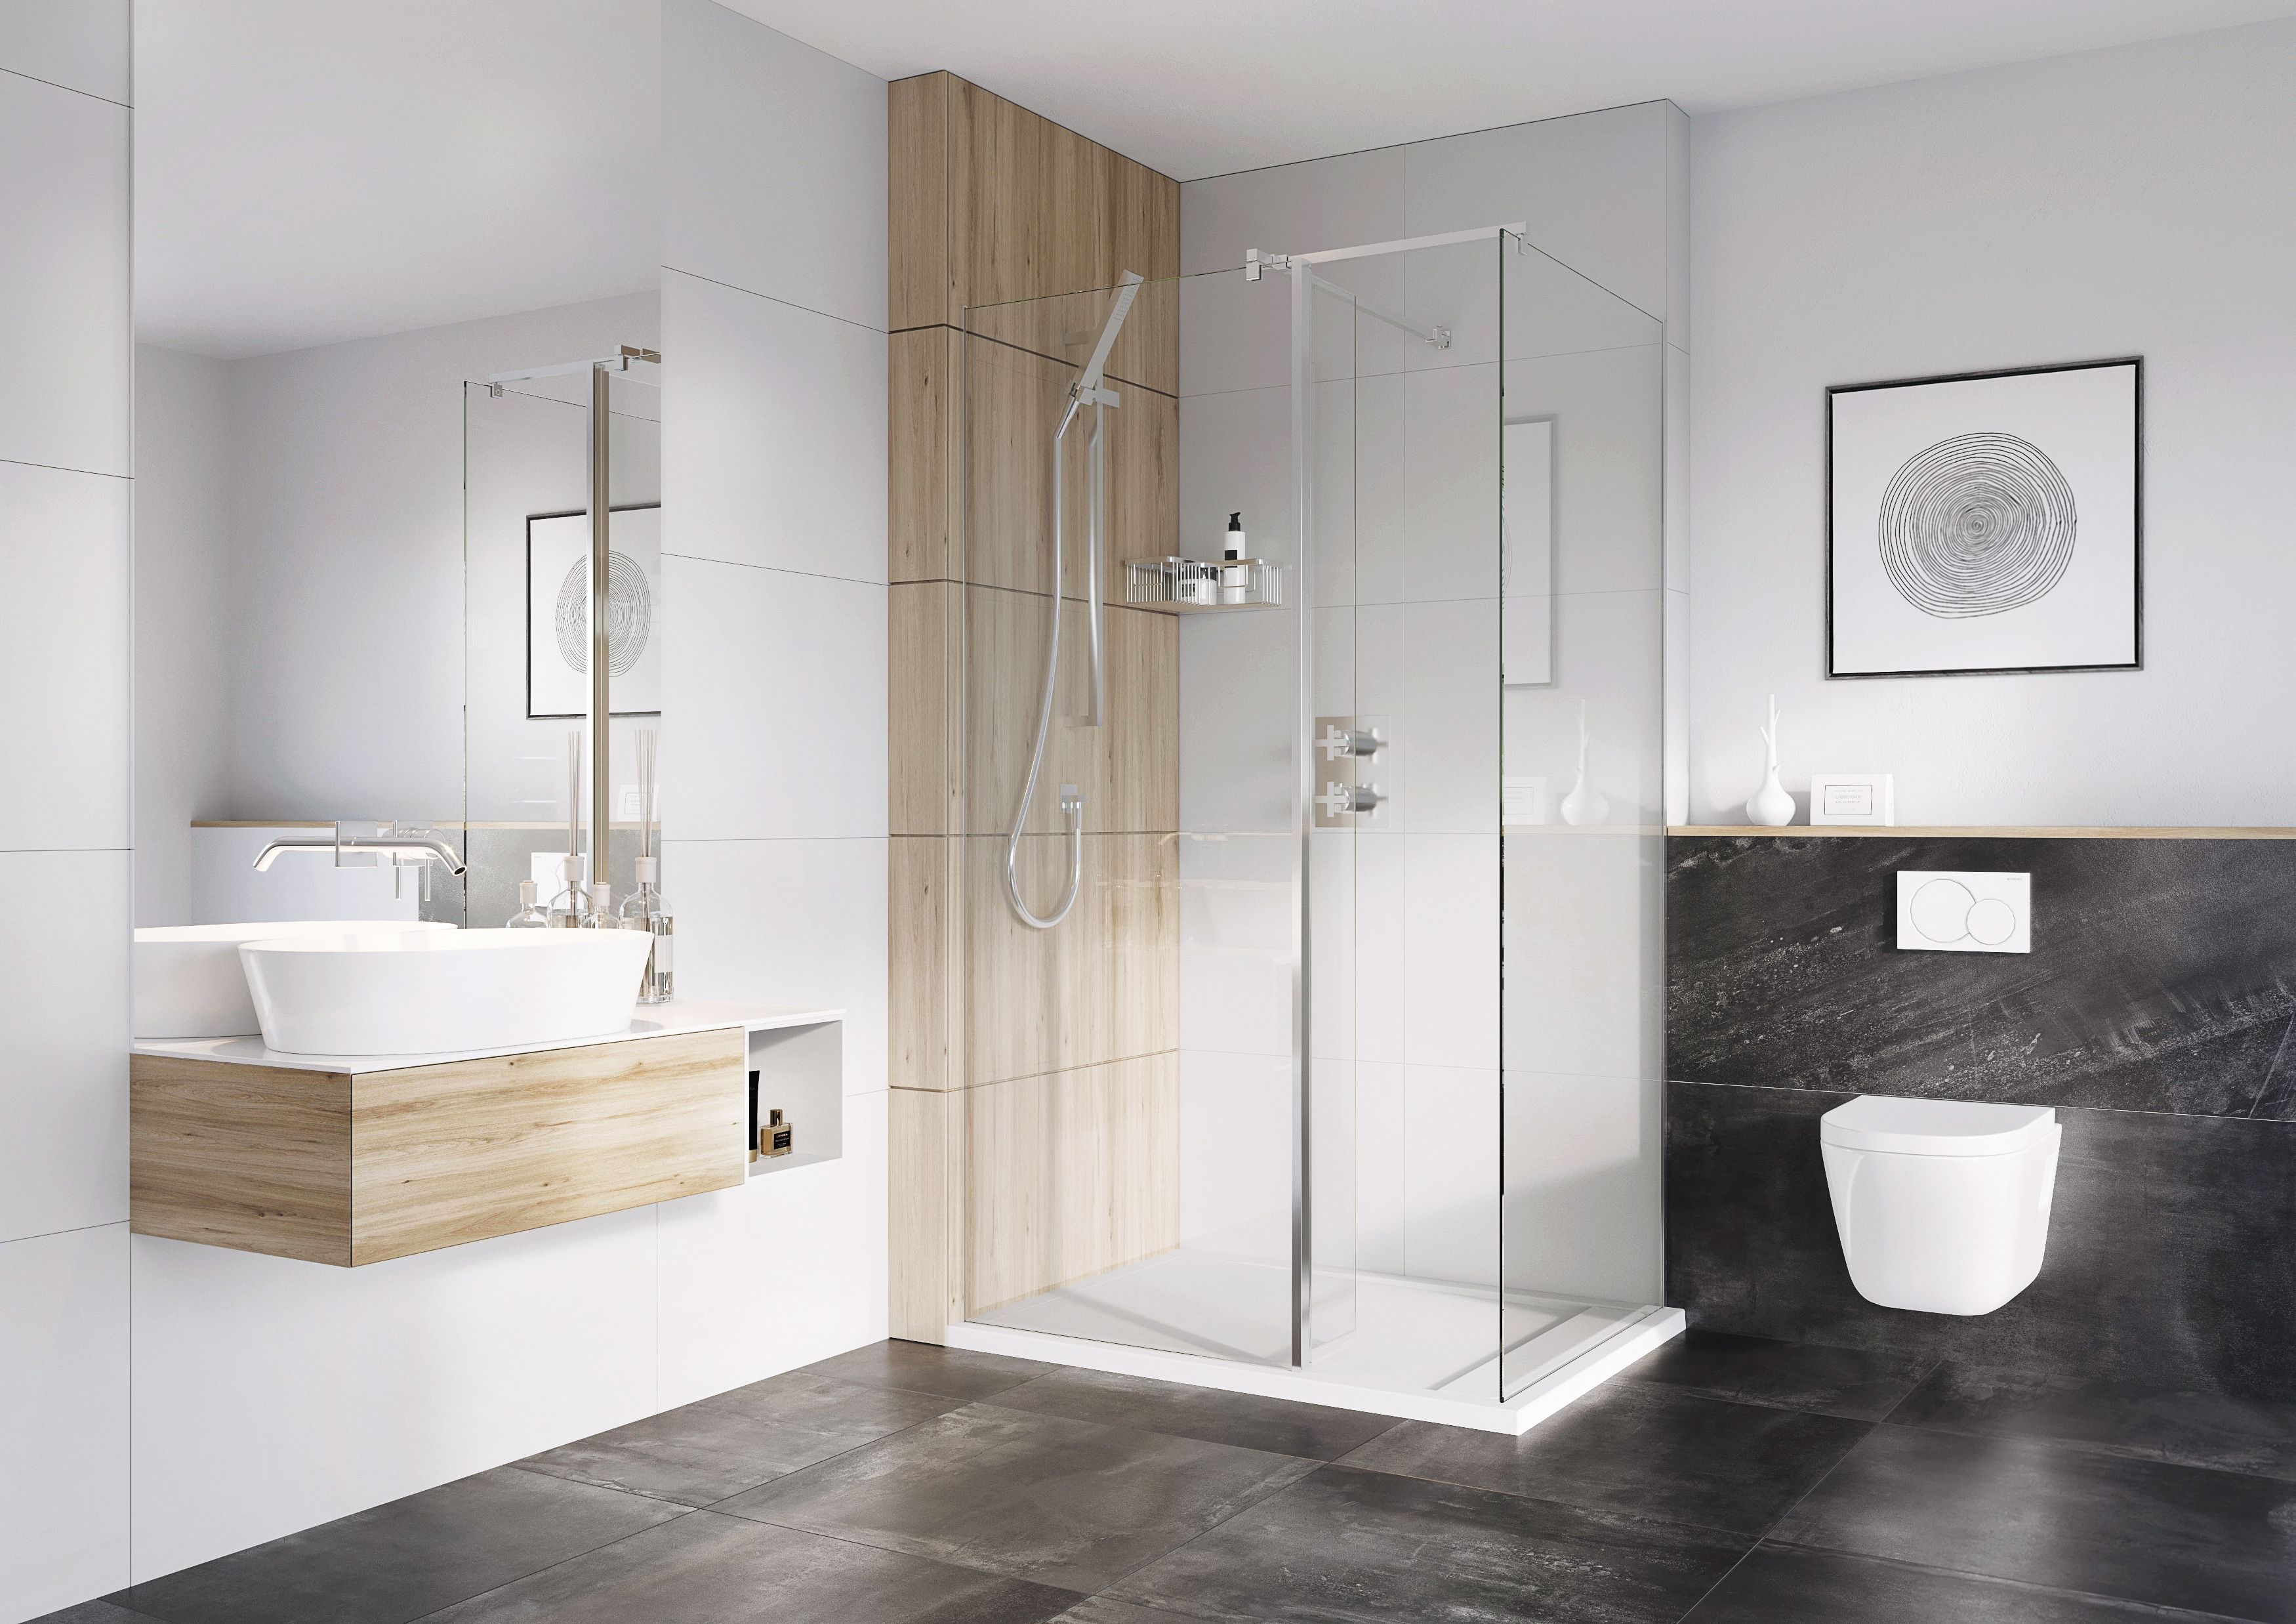 Select Wetroom Panels for Walk-in Shower Enclosure #grey #wood ...